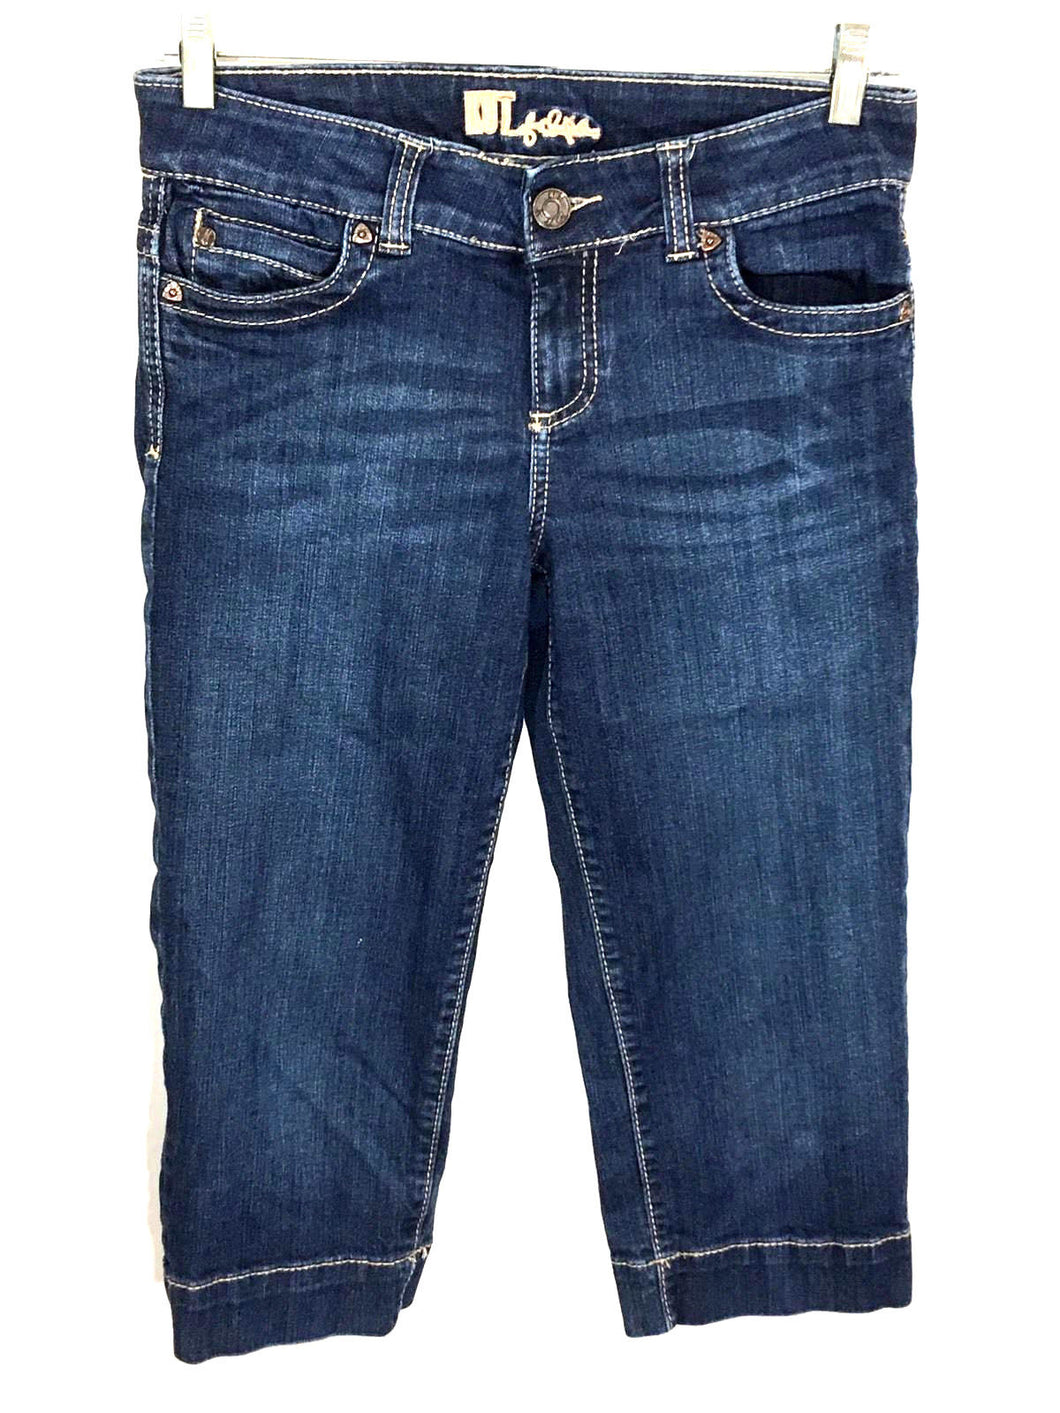 Kut from the Kloth Capri Cropped Jeans Style KC035MA1 Womens 4 - Preowned - FunkyCrap Boutique